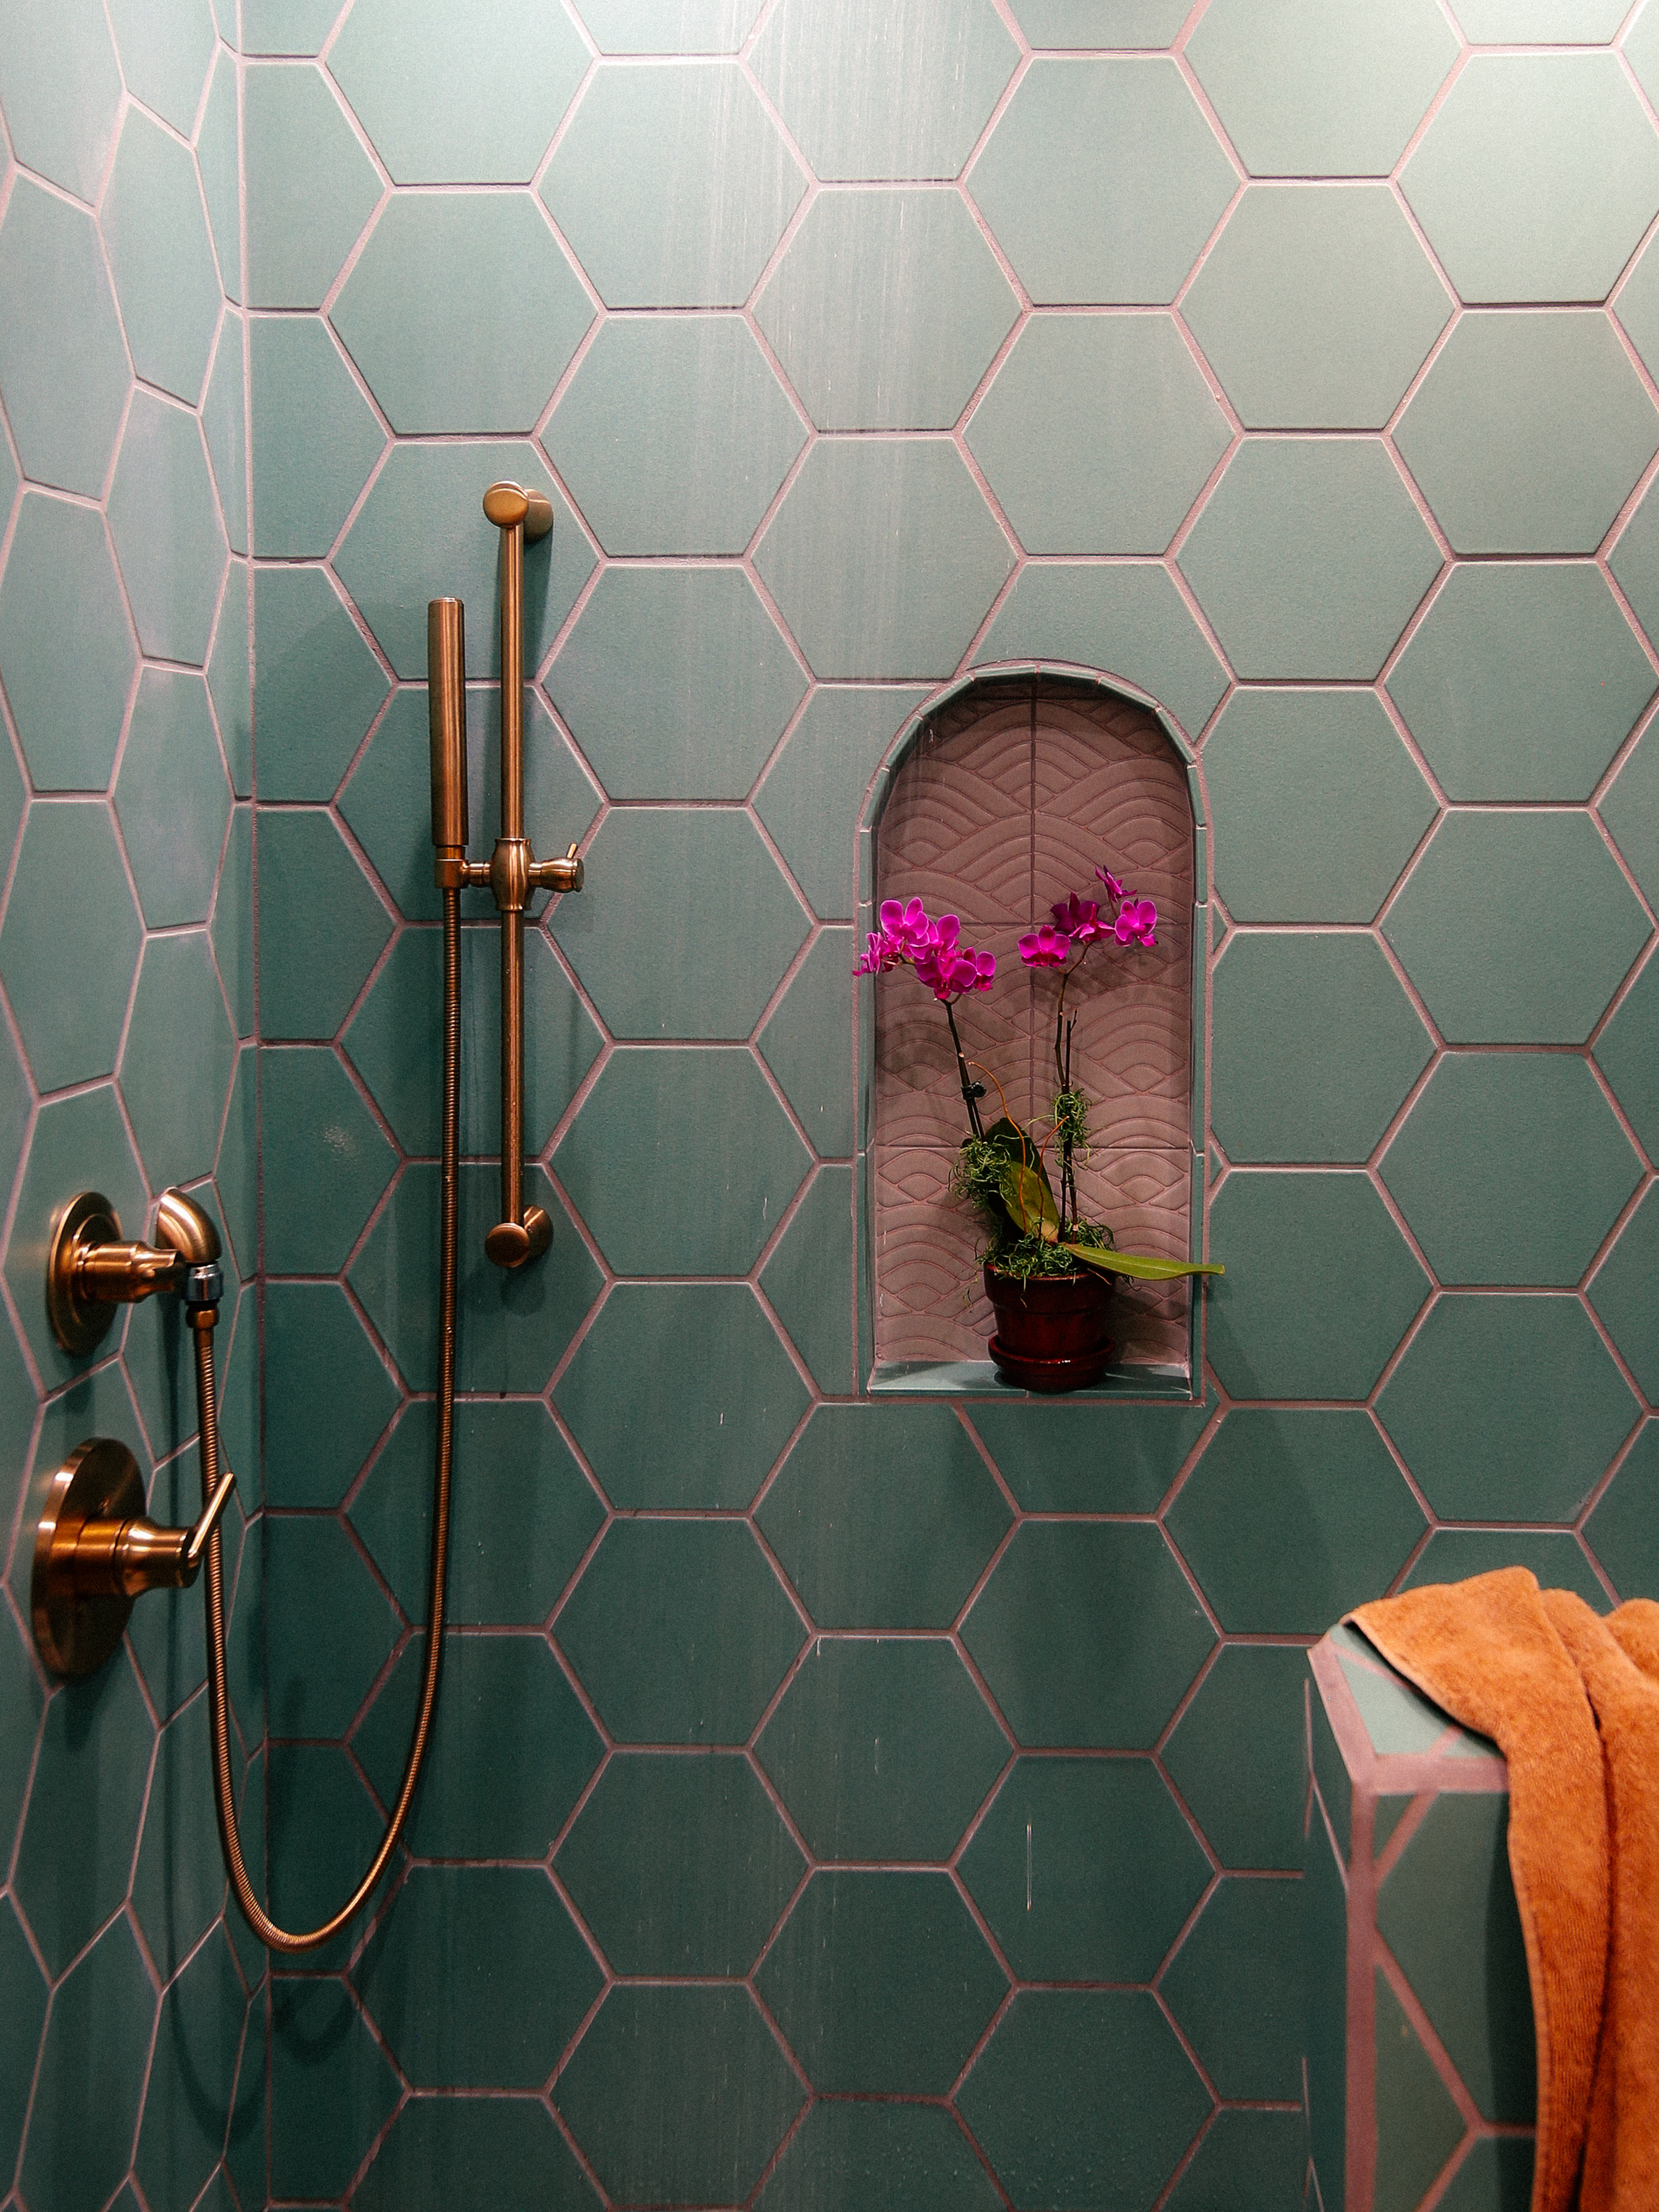 2018_Q3_image_residential_influencer_full_rights_Justina-Faith-Blakeney_parents_condo_guest_bathroom_shower_pony_wall_tile_hexagon_8_tidewater_floor_handpainted_summit_neutral_motif_arched_niche_detail.jpg?mtime=20181008104607#asset:420145